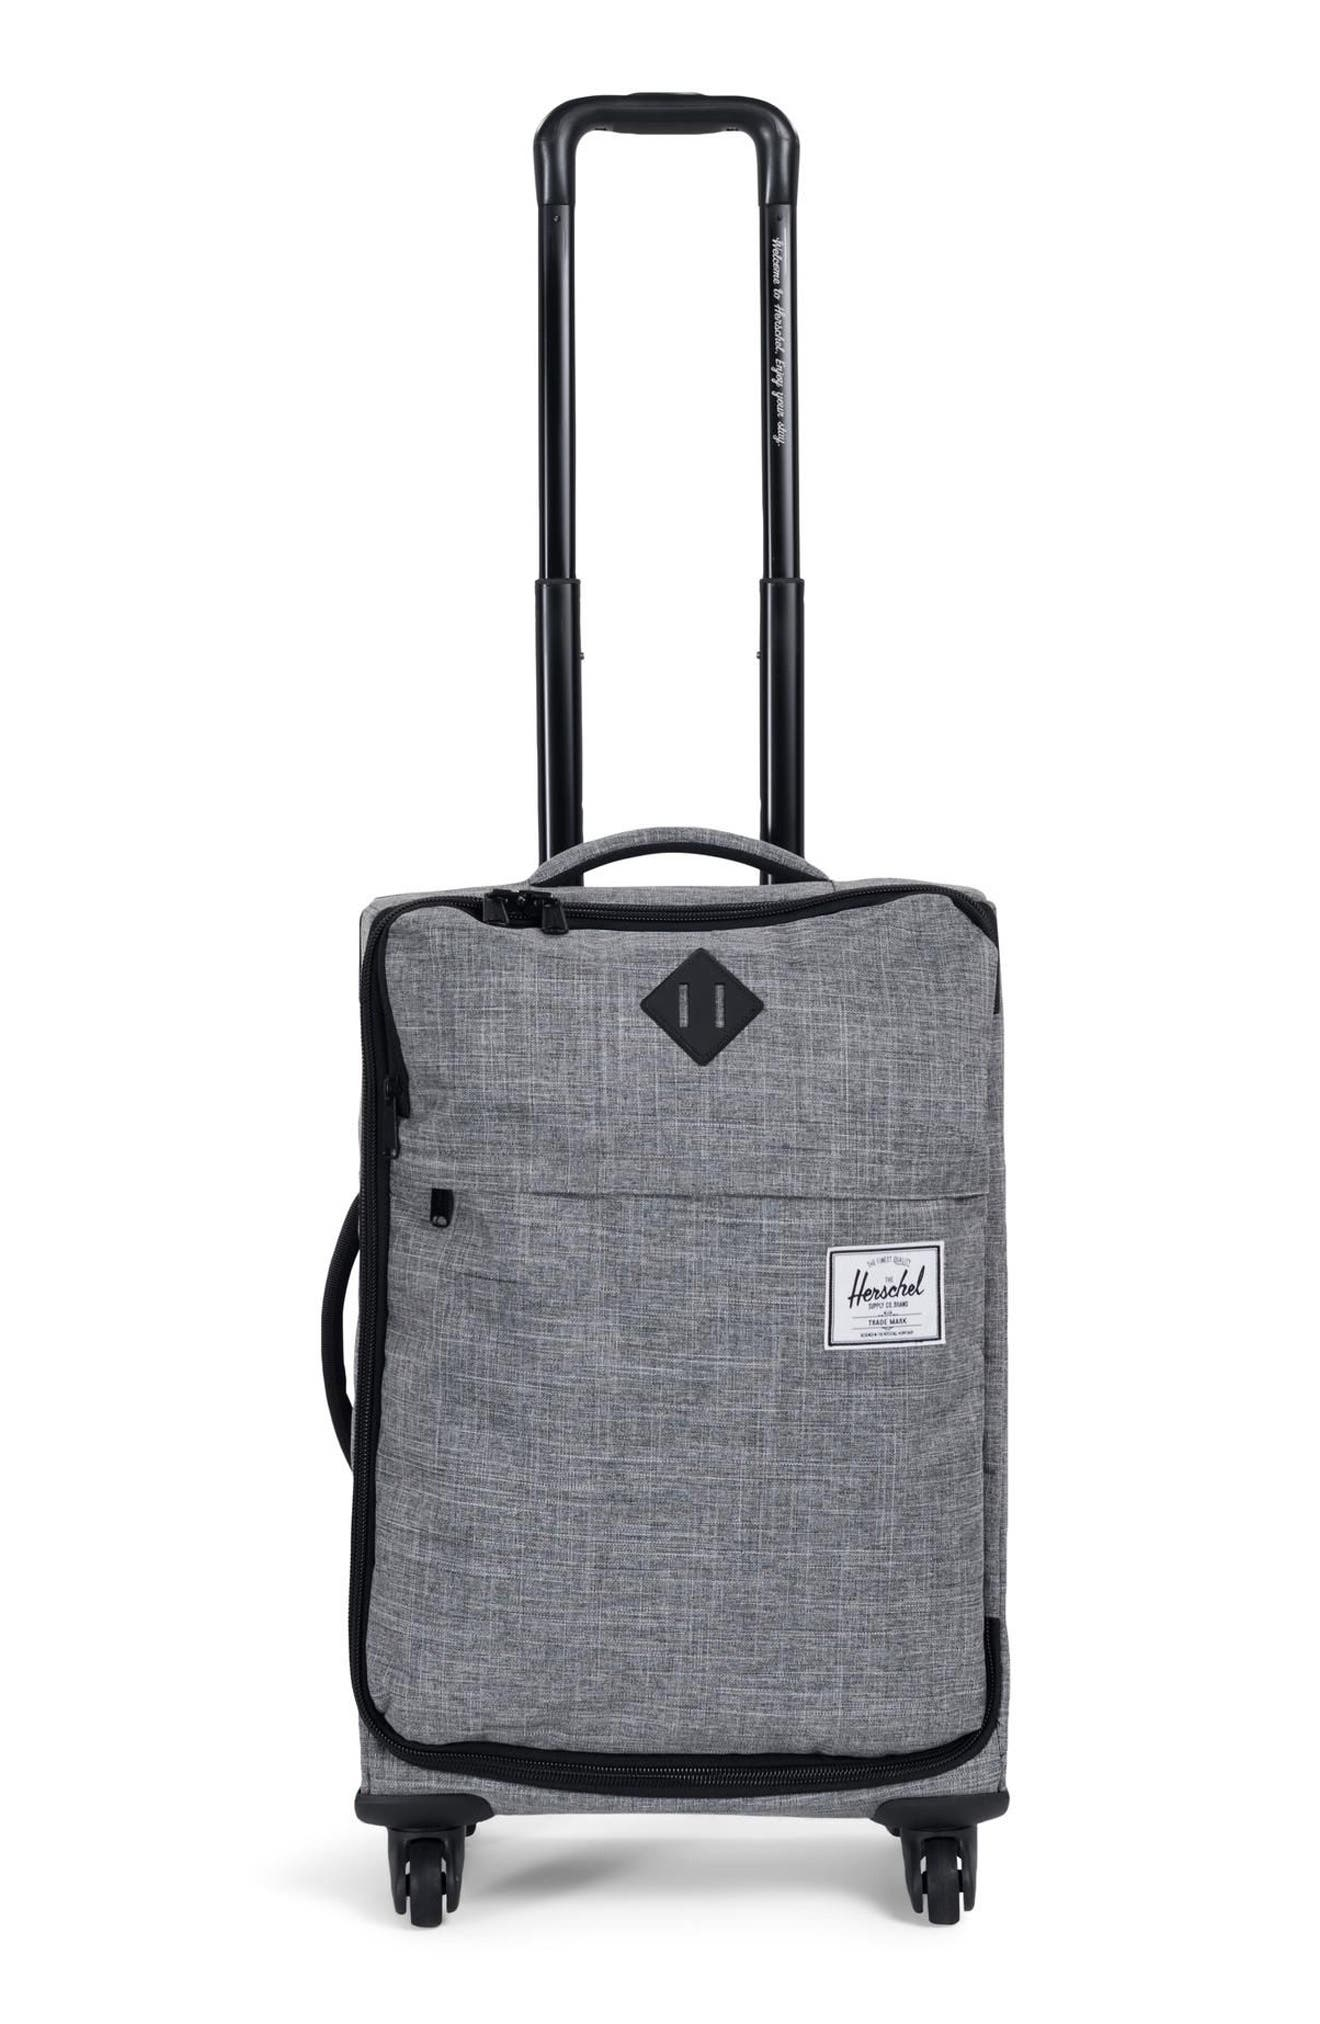 HIGHLAND 22-INCH WHEELED CARRY-ON - GREY